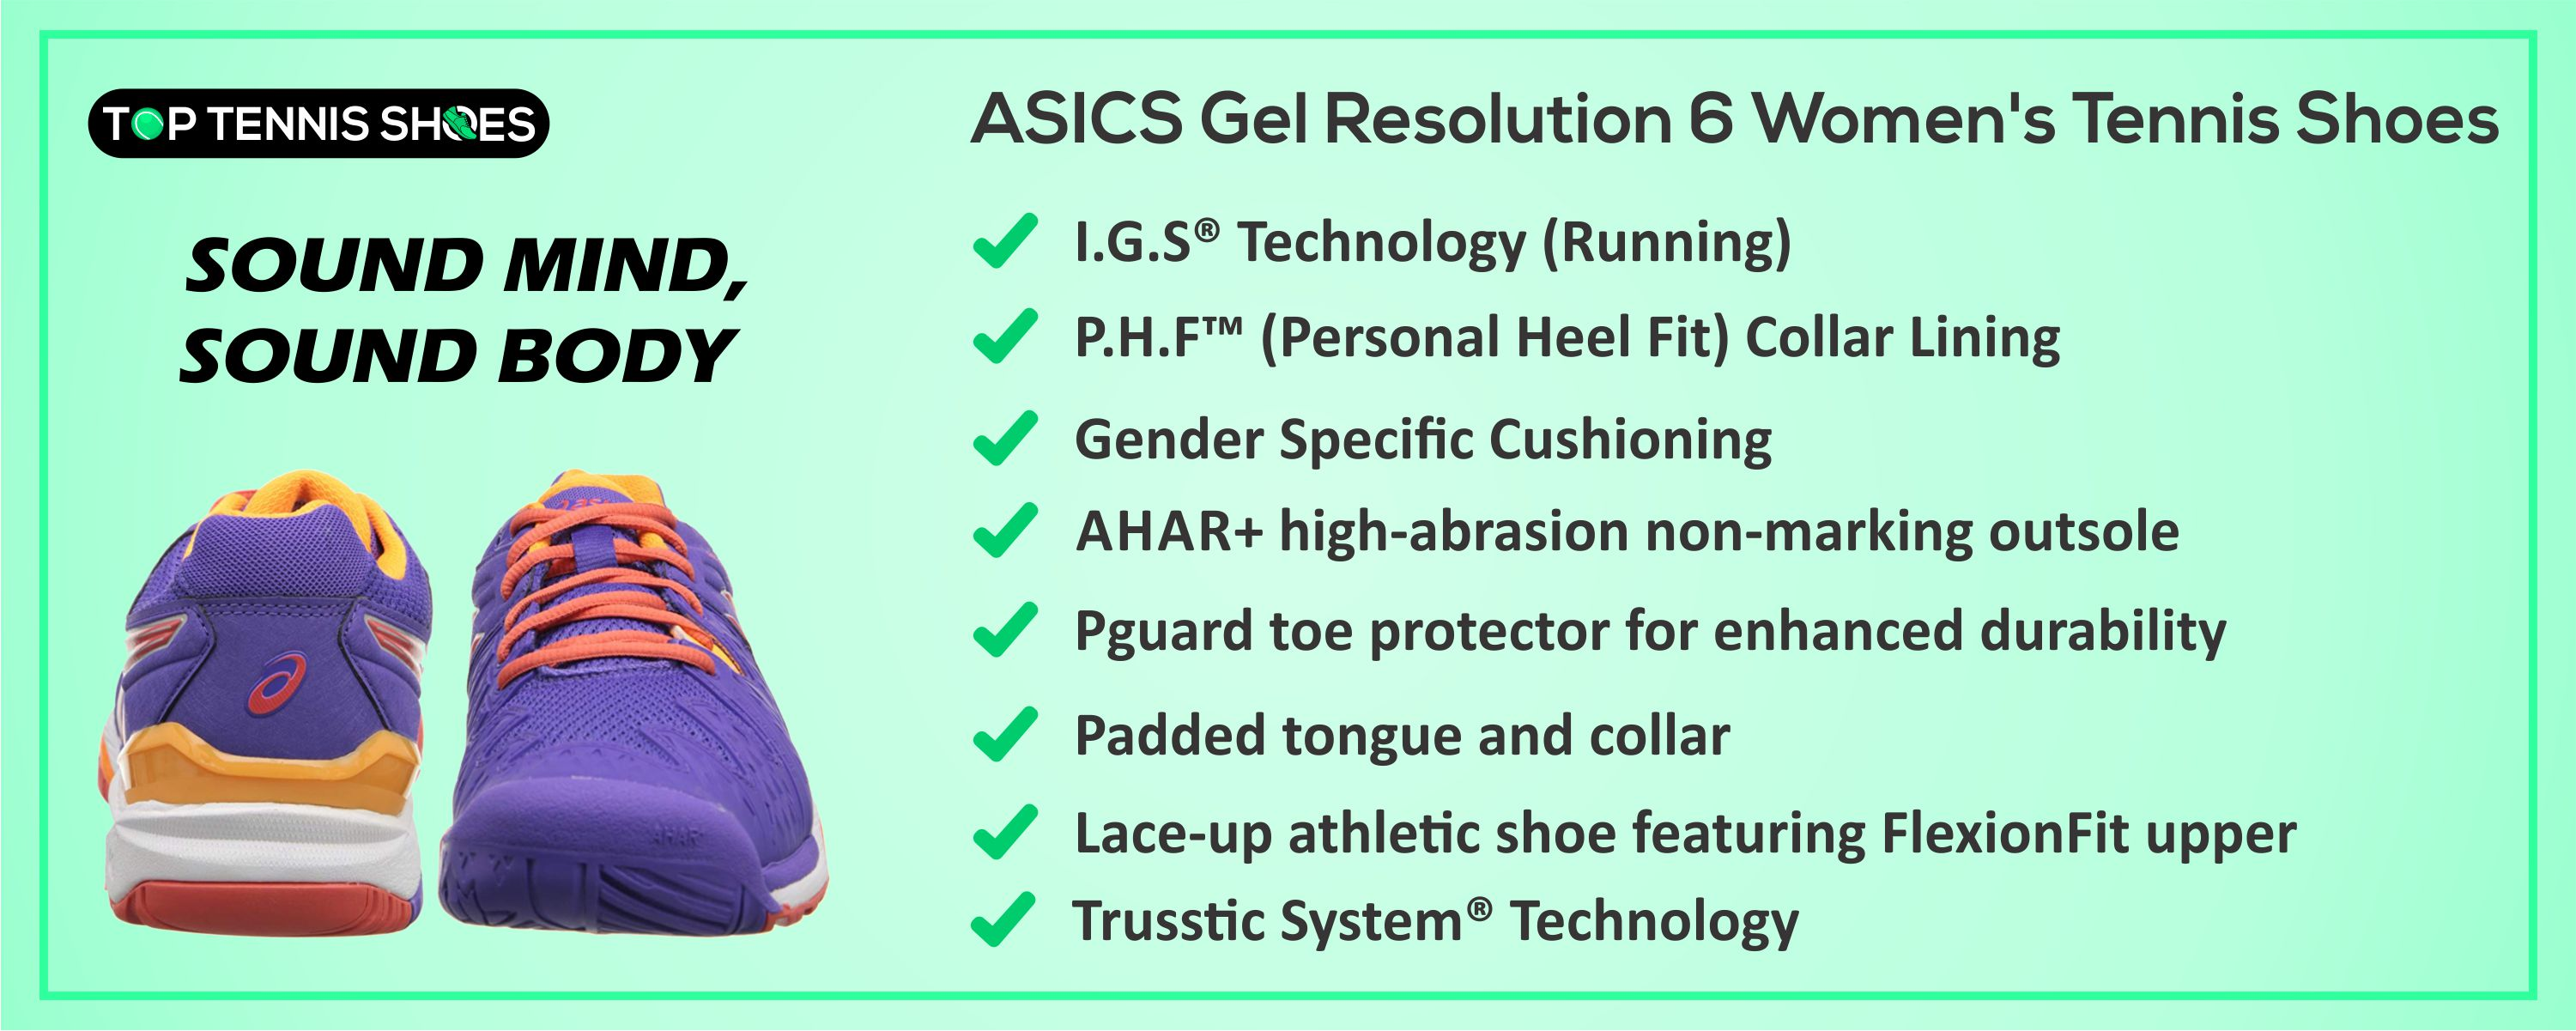 ASICS Gel Resolution 6 detailed reviews